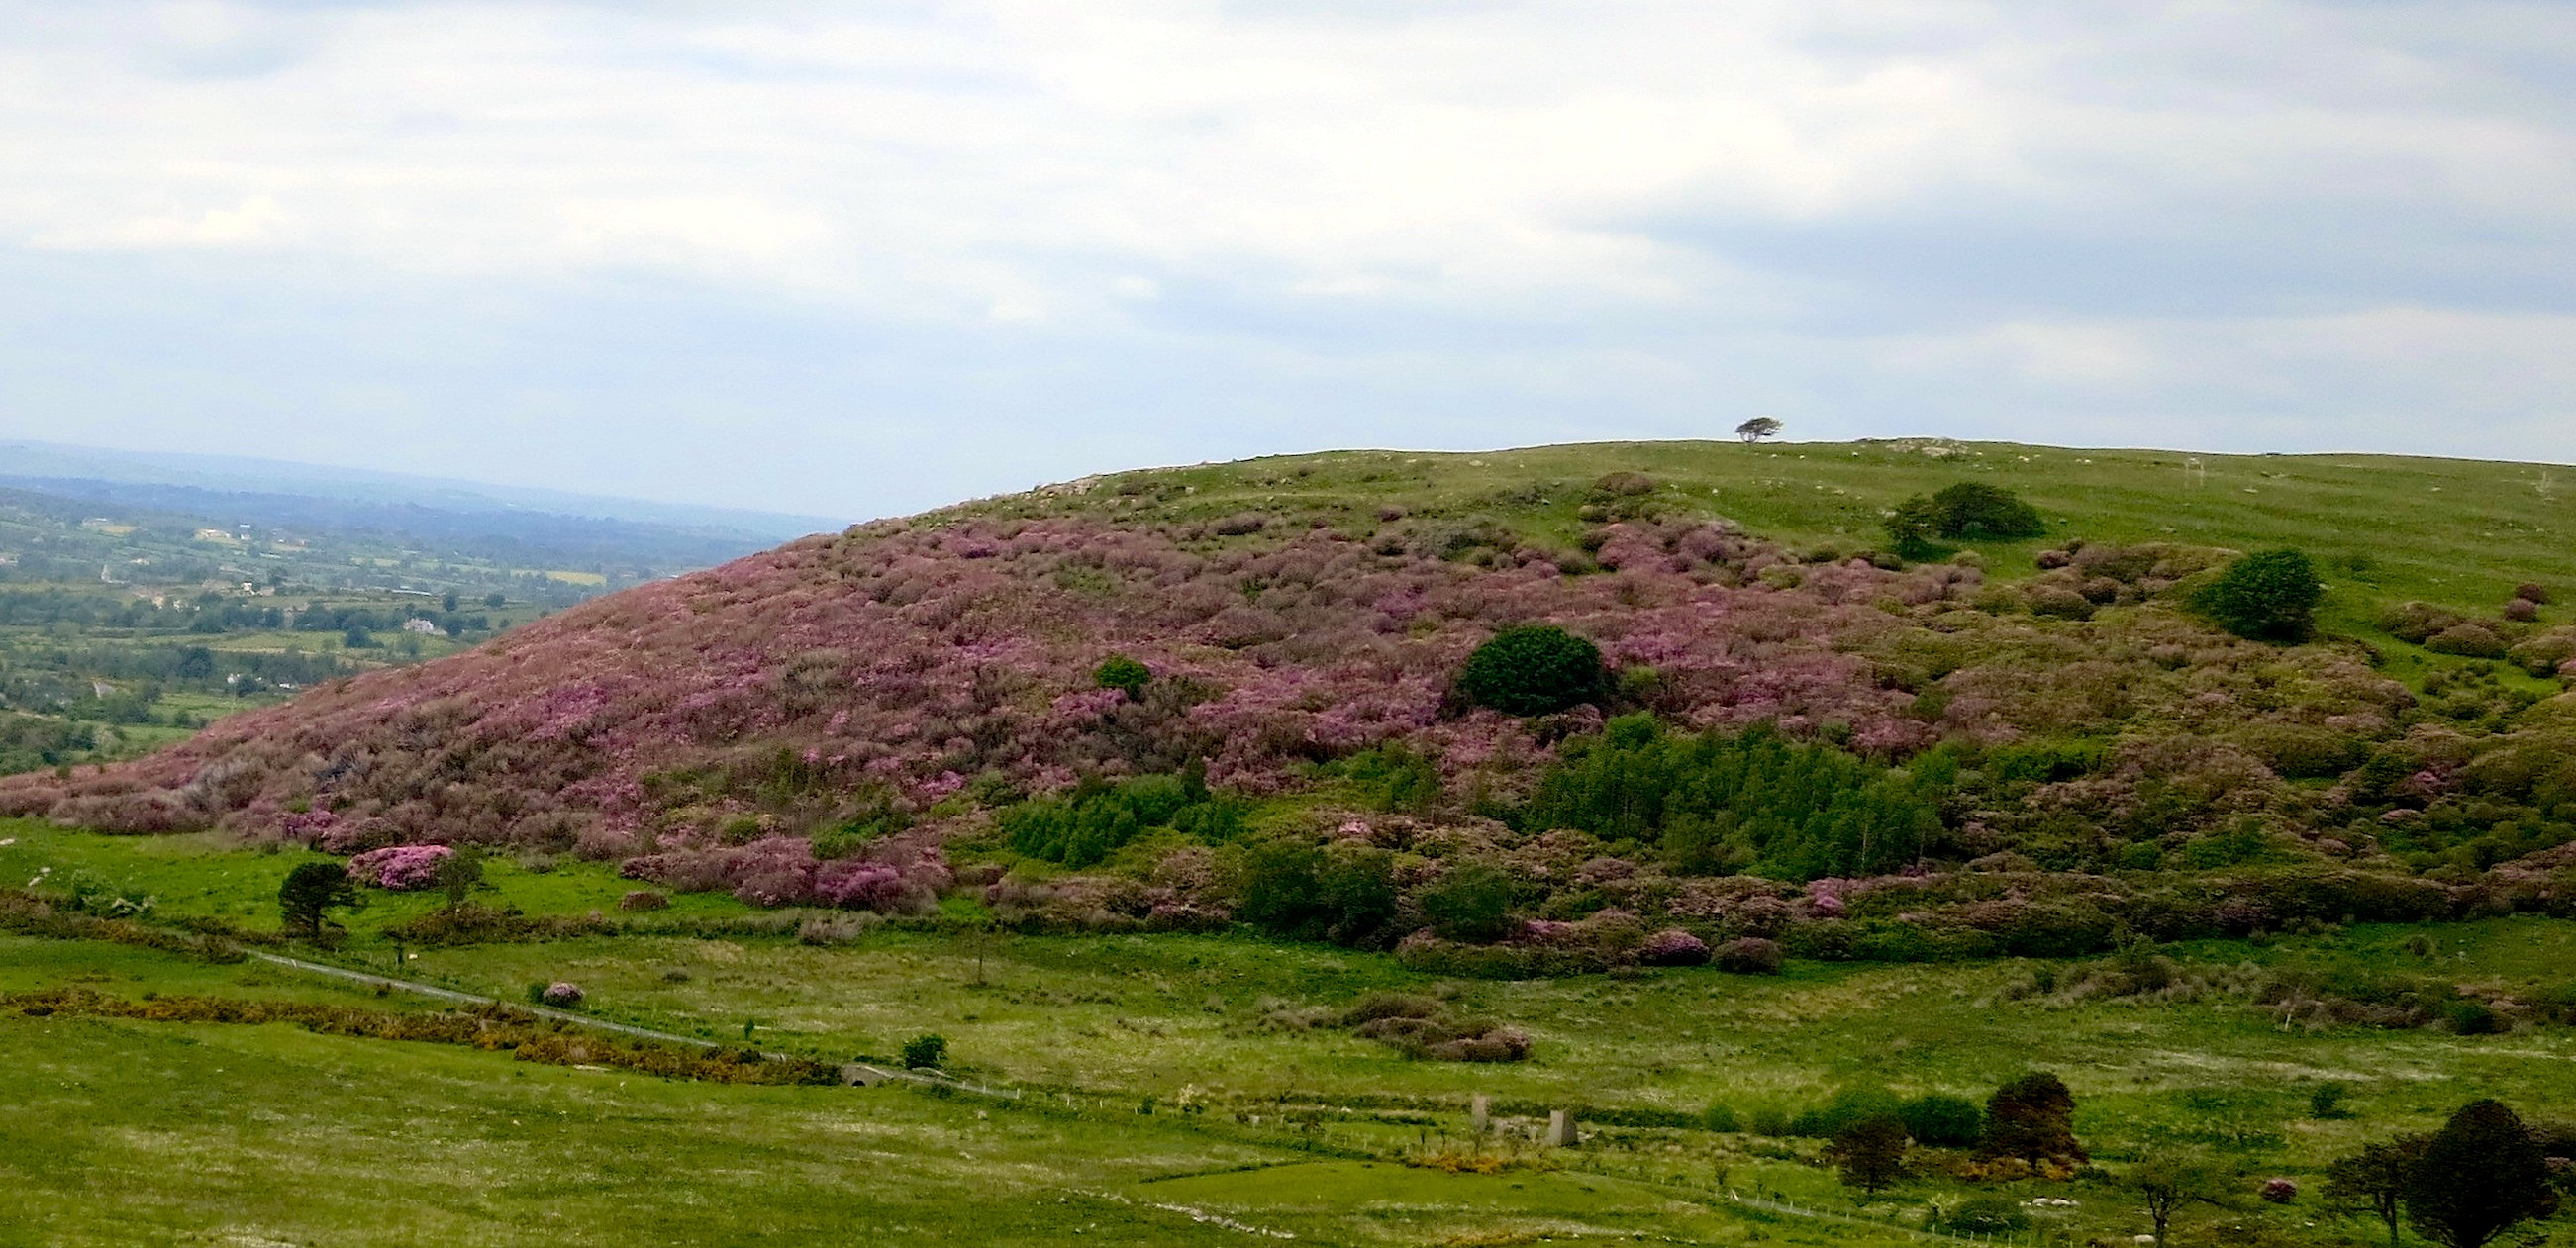 Rhododendron forest in the Mourne Mountains of Northern Ireland